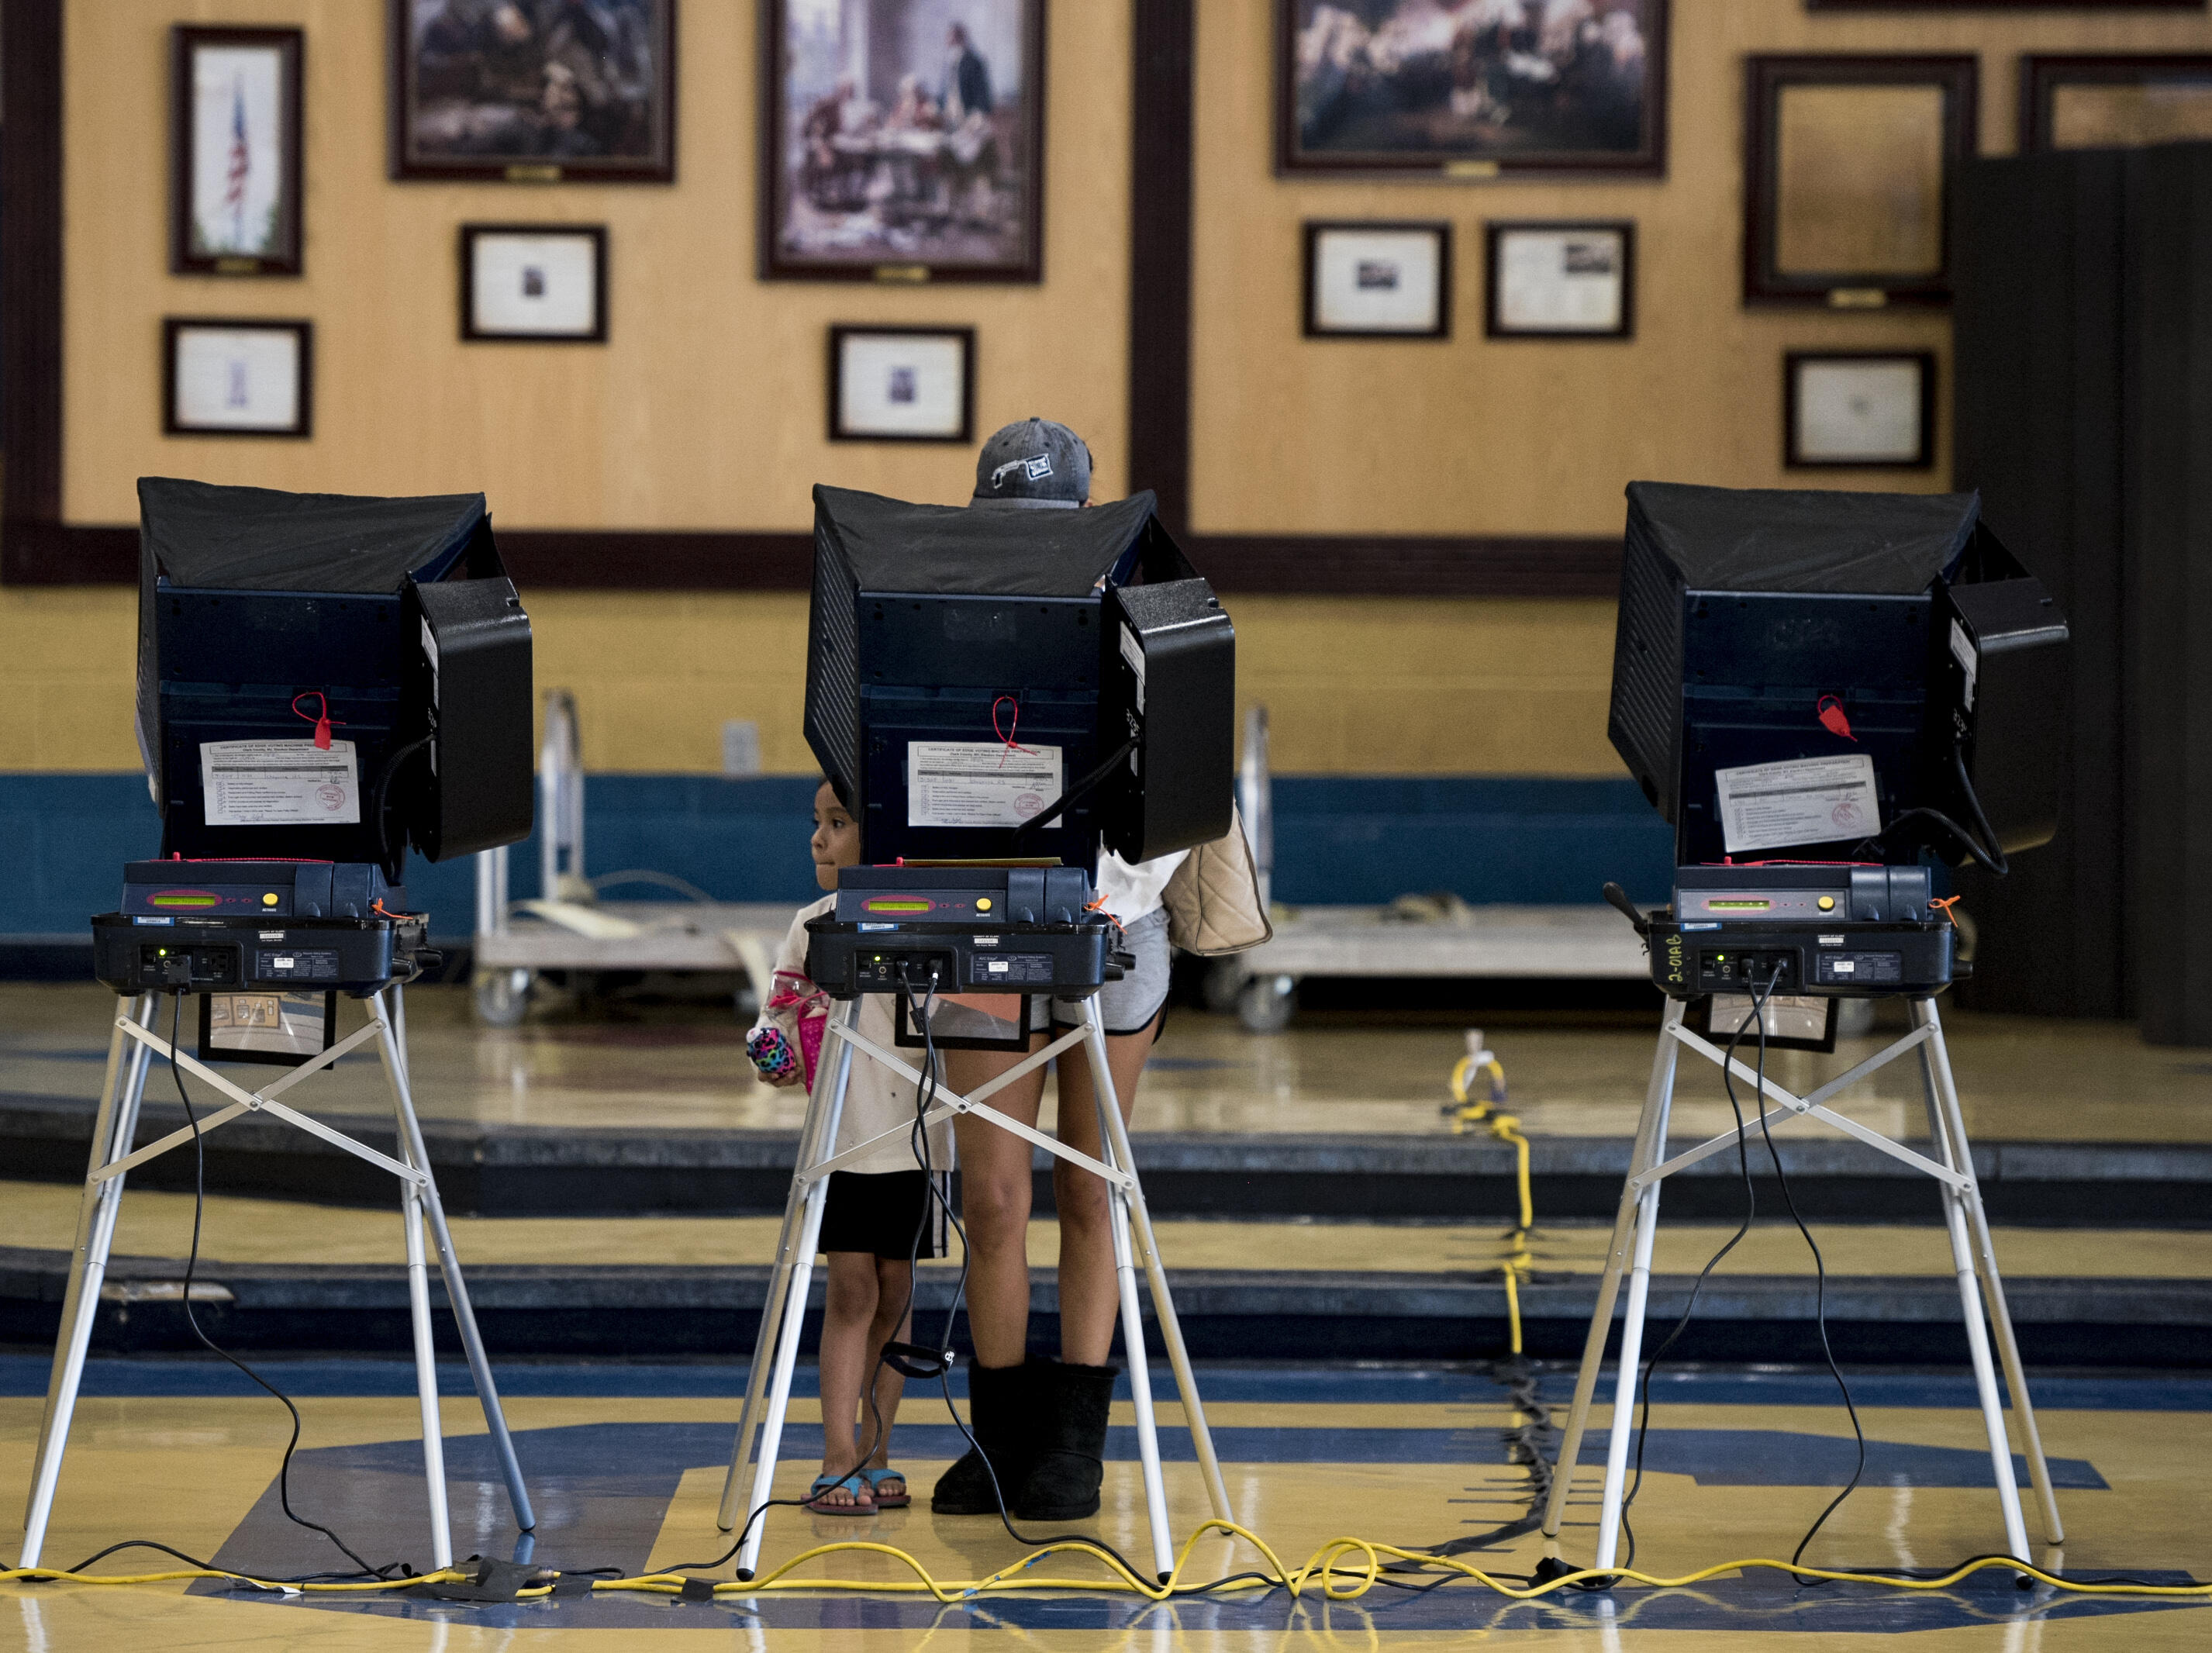 voting-kiosk-gettyimages-621785864